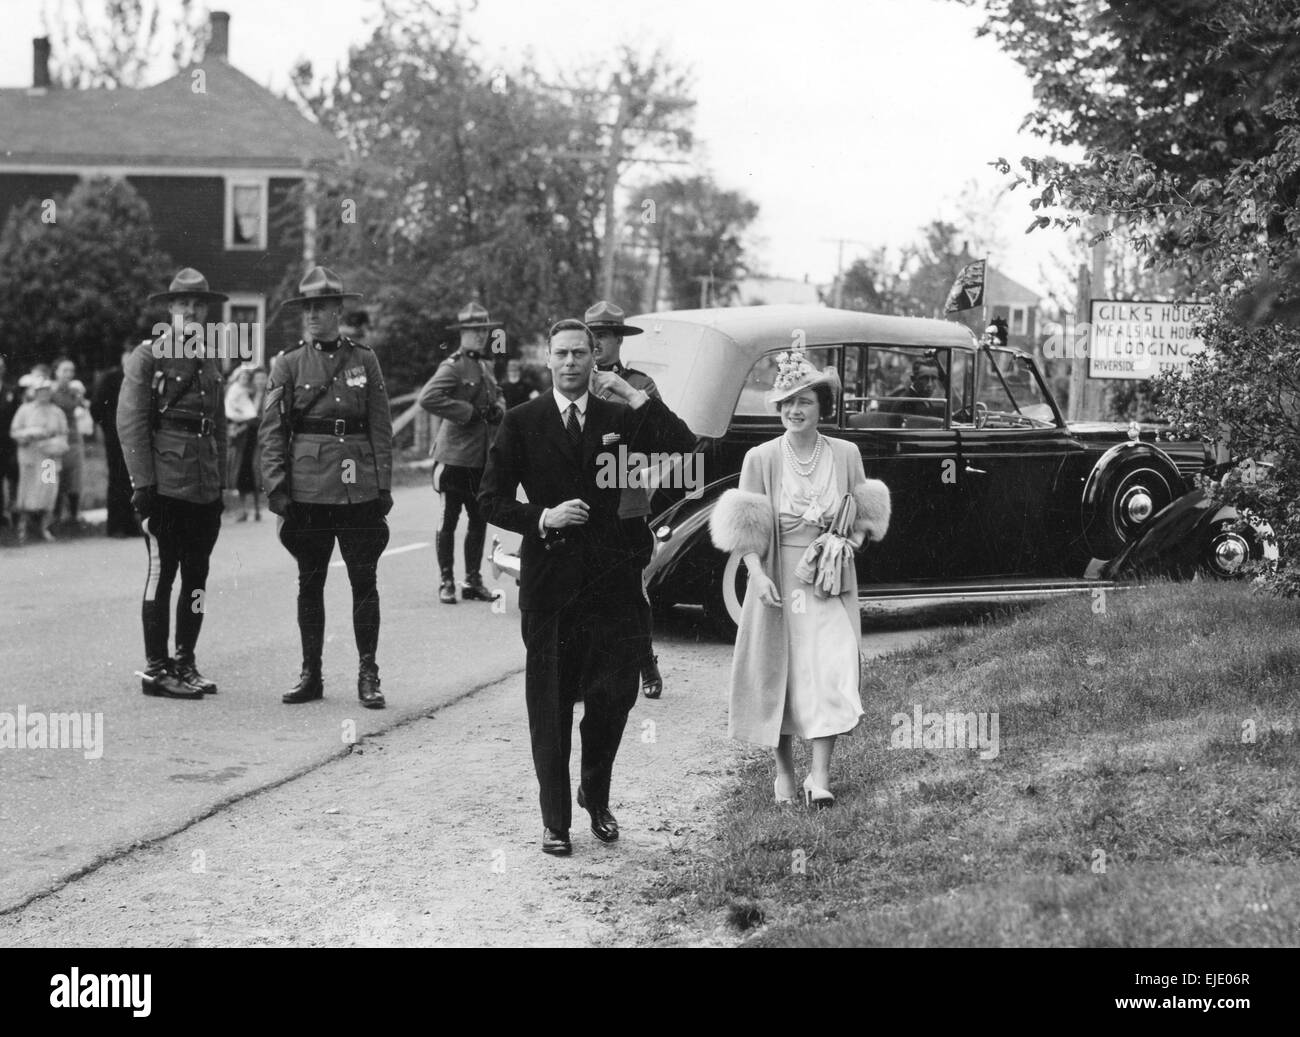 ROYAL TOUR OF CANADA 1939. King George VI and Queen Elizabeth arriving at Doaktown, New Brunswick - Stock Image